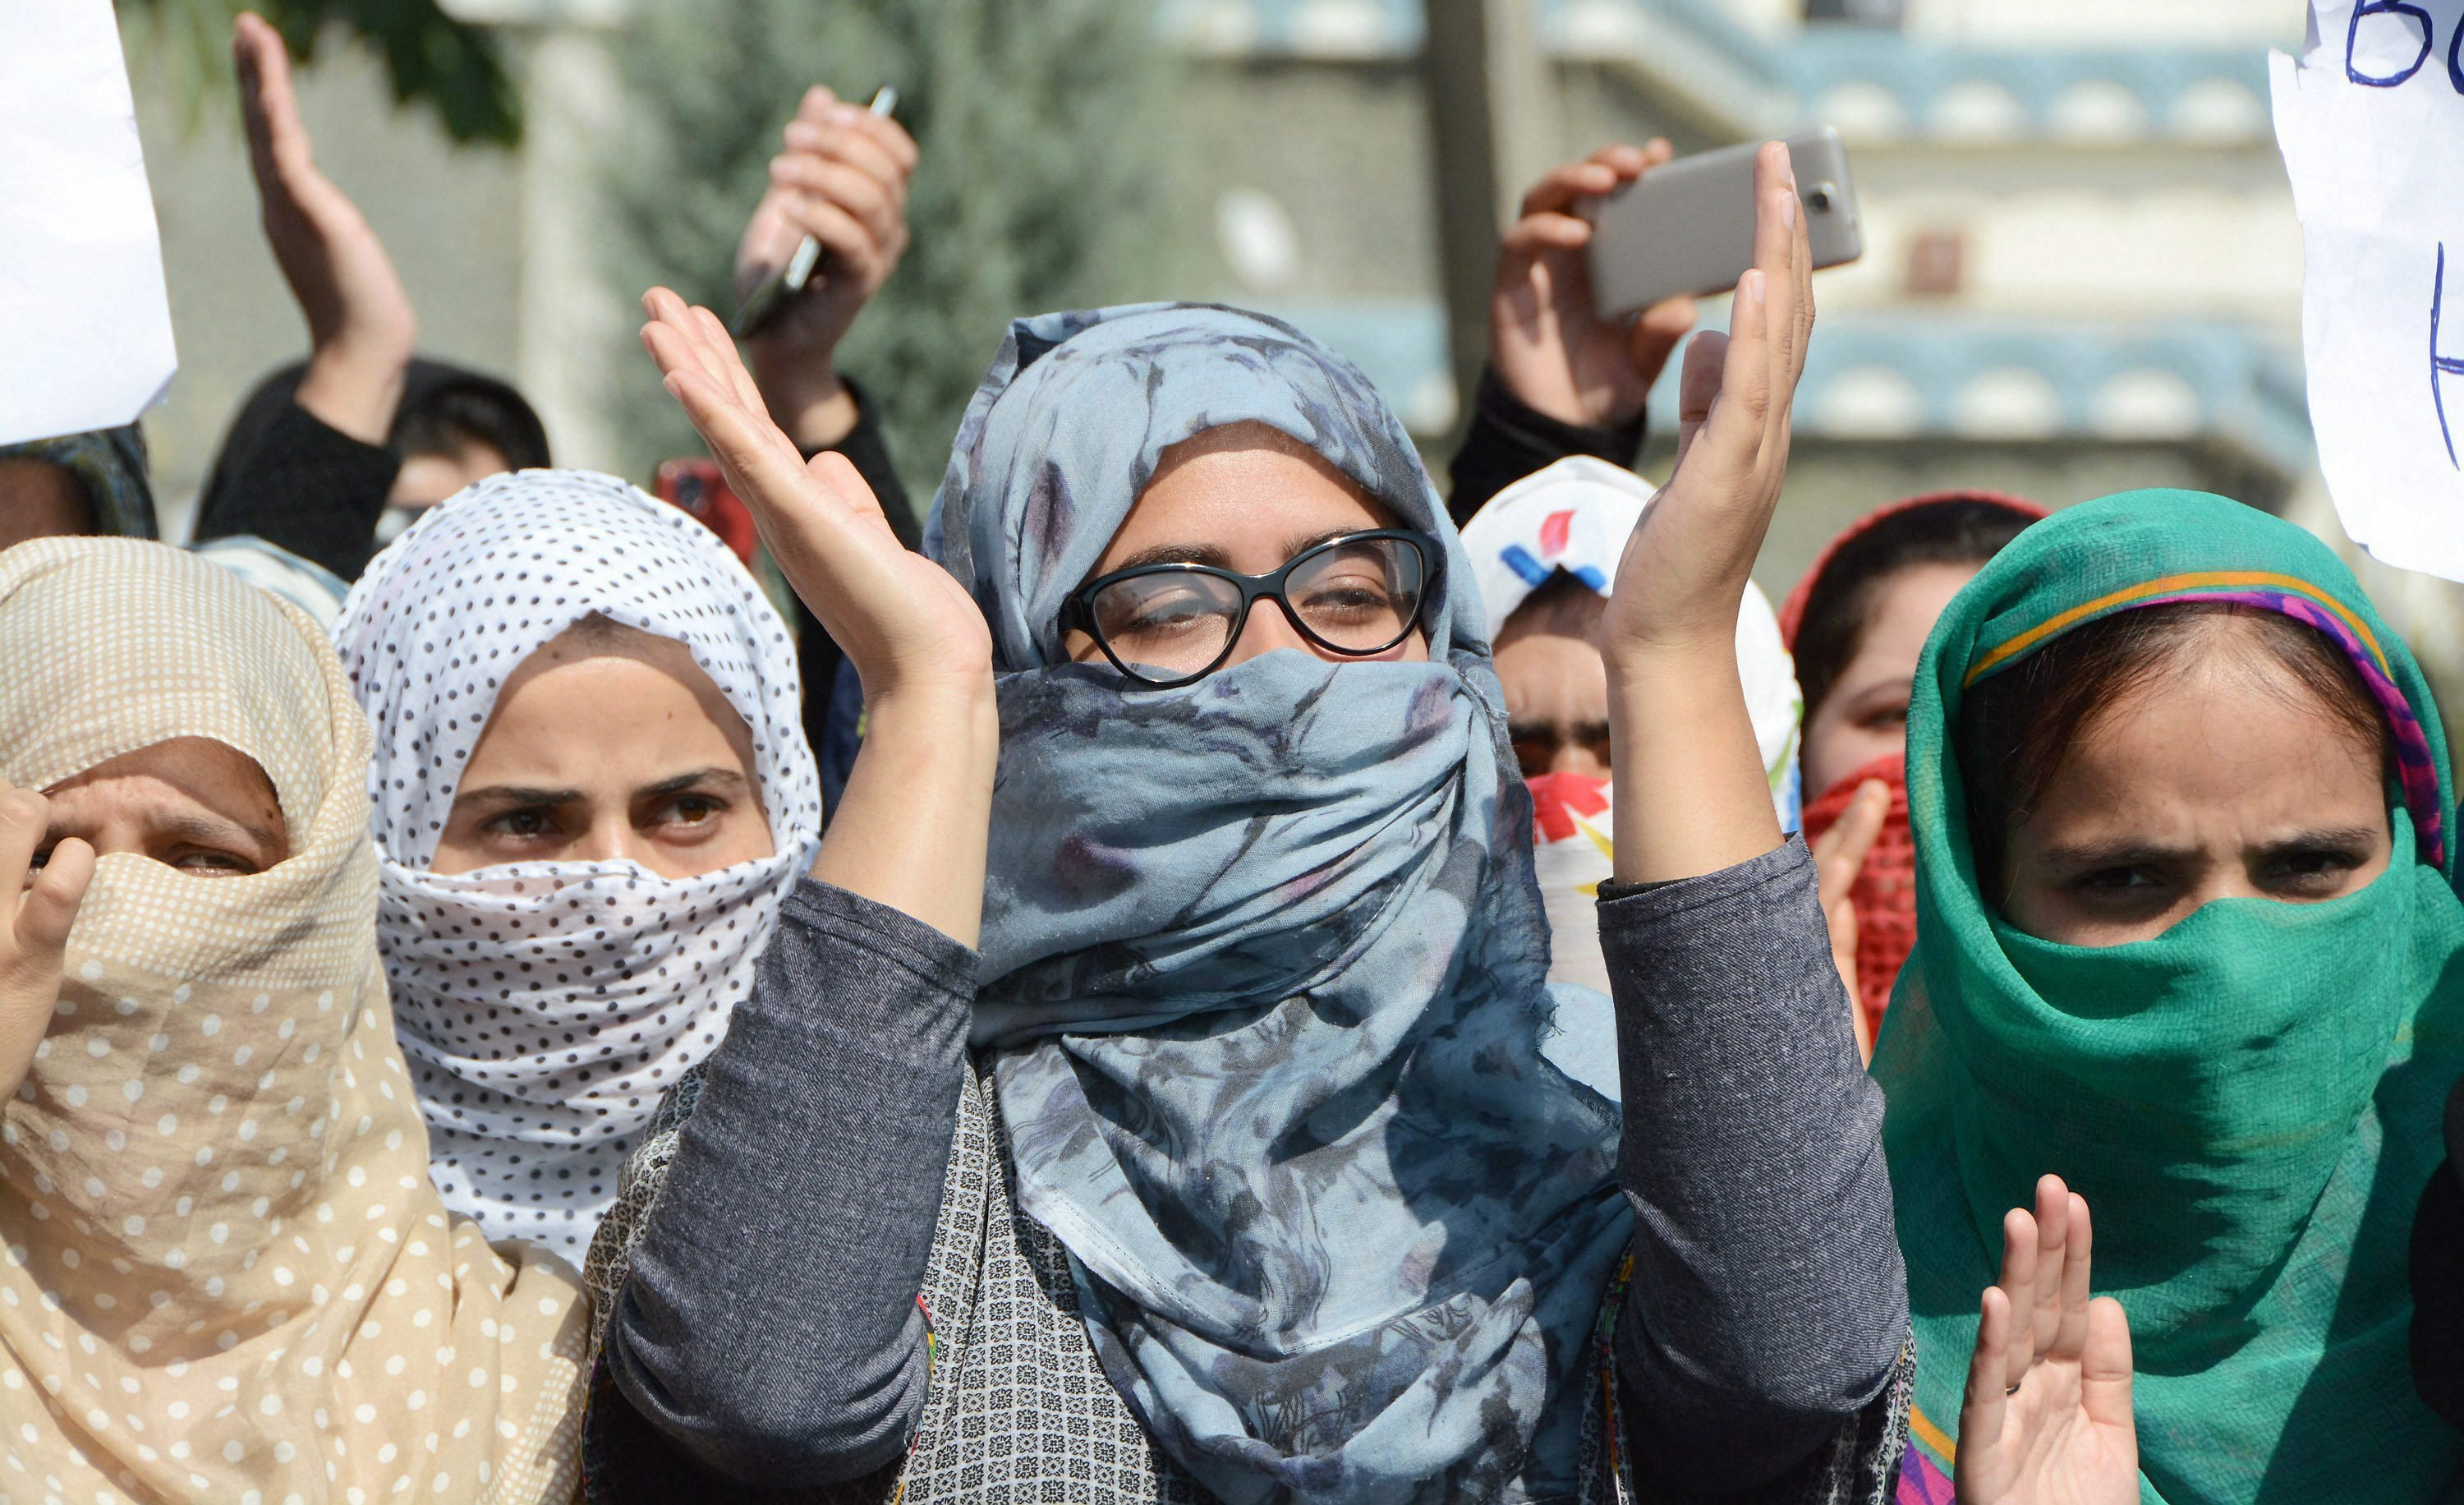 Srinagar: Students shout slogans during a protest rally against the fresh incidents of braid chopping in the Valley, at Kashmir University in Srinagar on Thursday. PTI Photo (PTI10_12_2017_000151A)